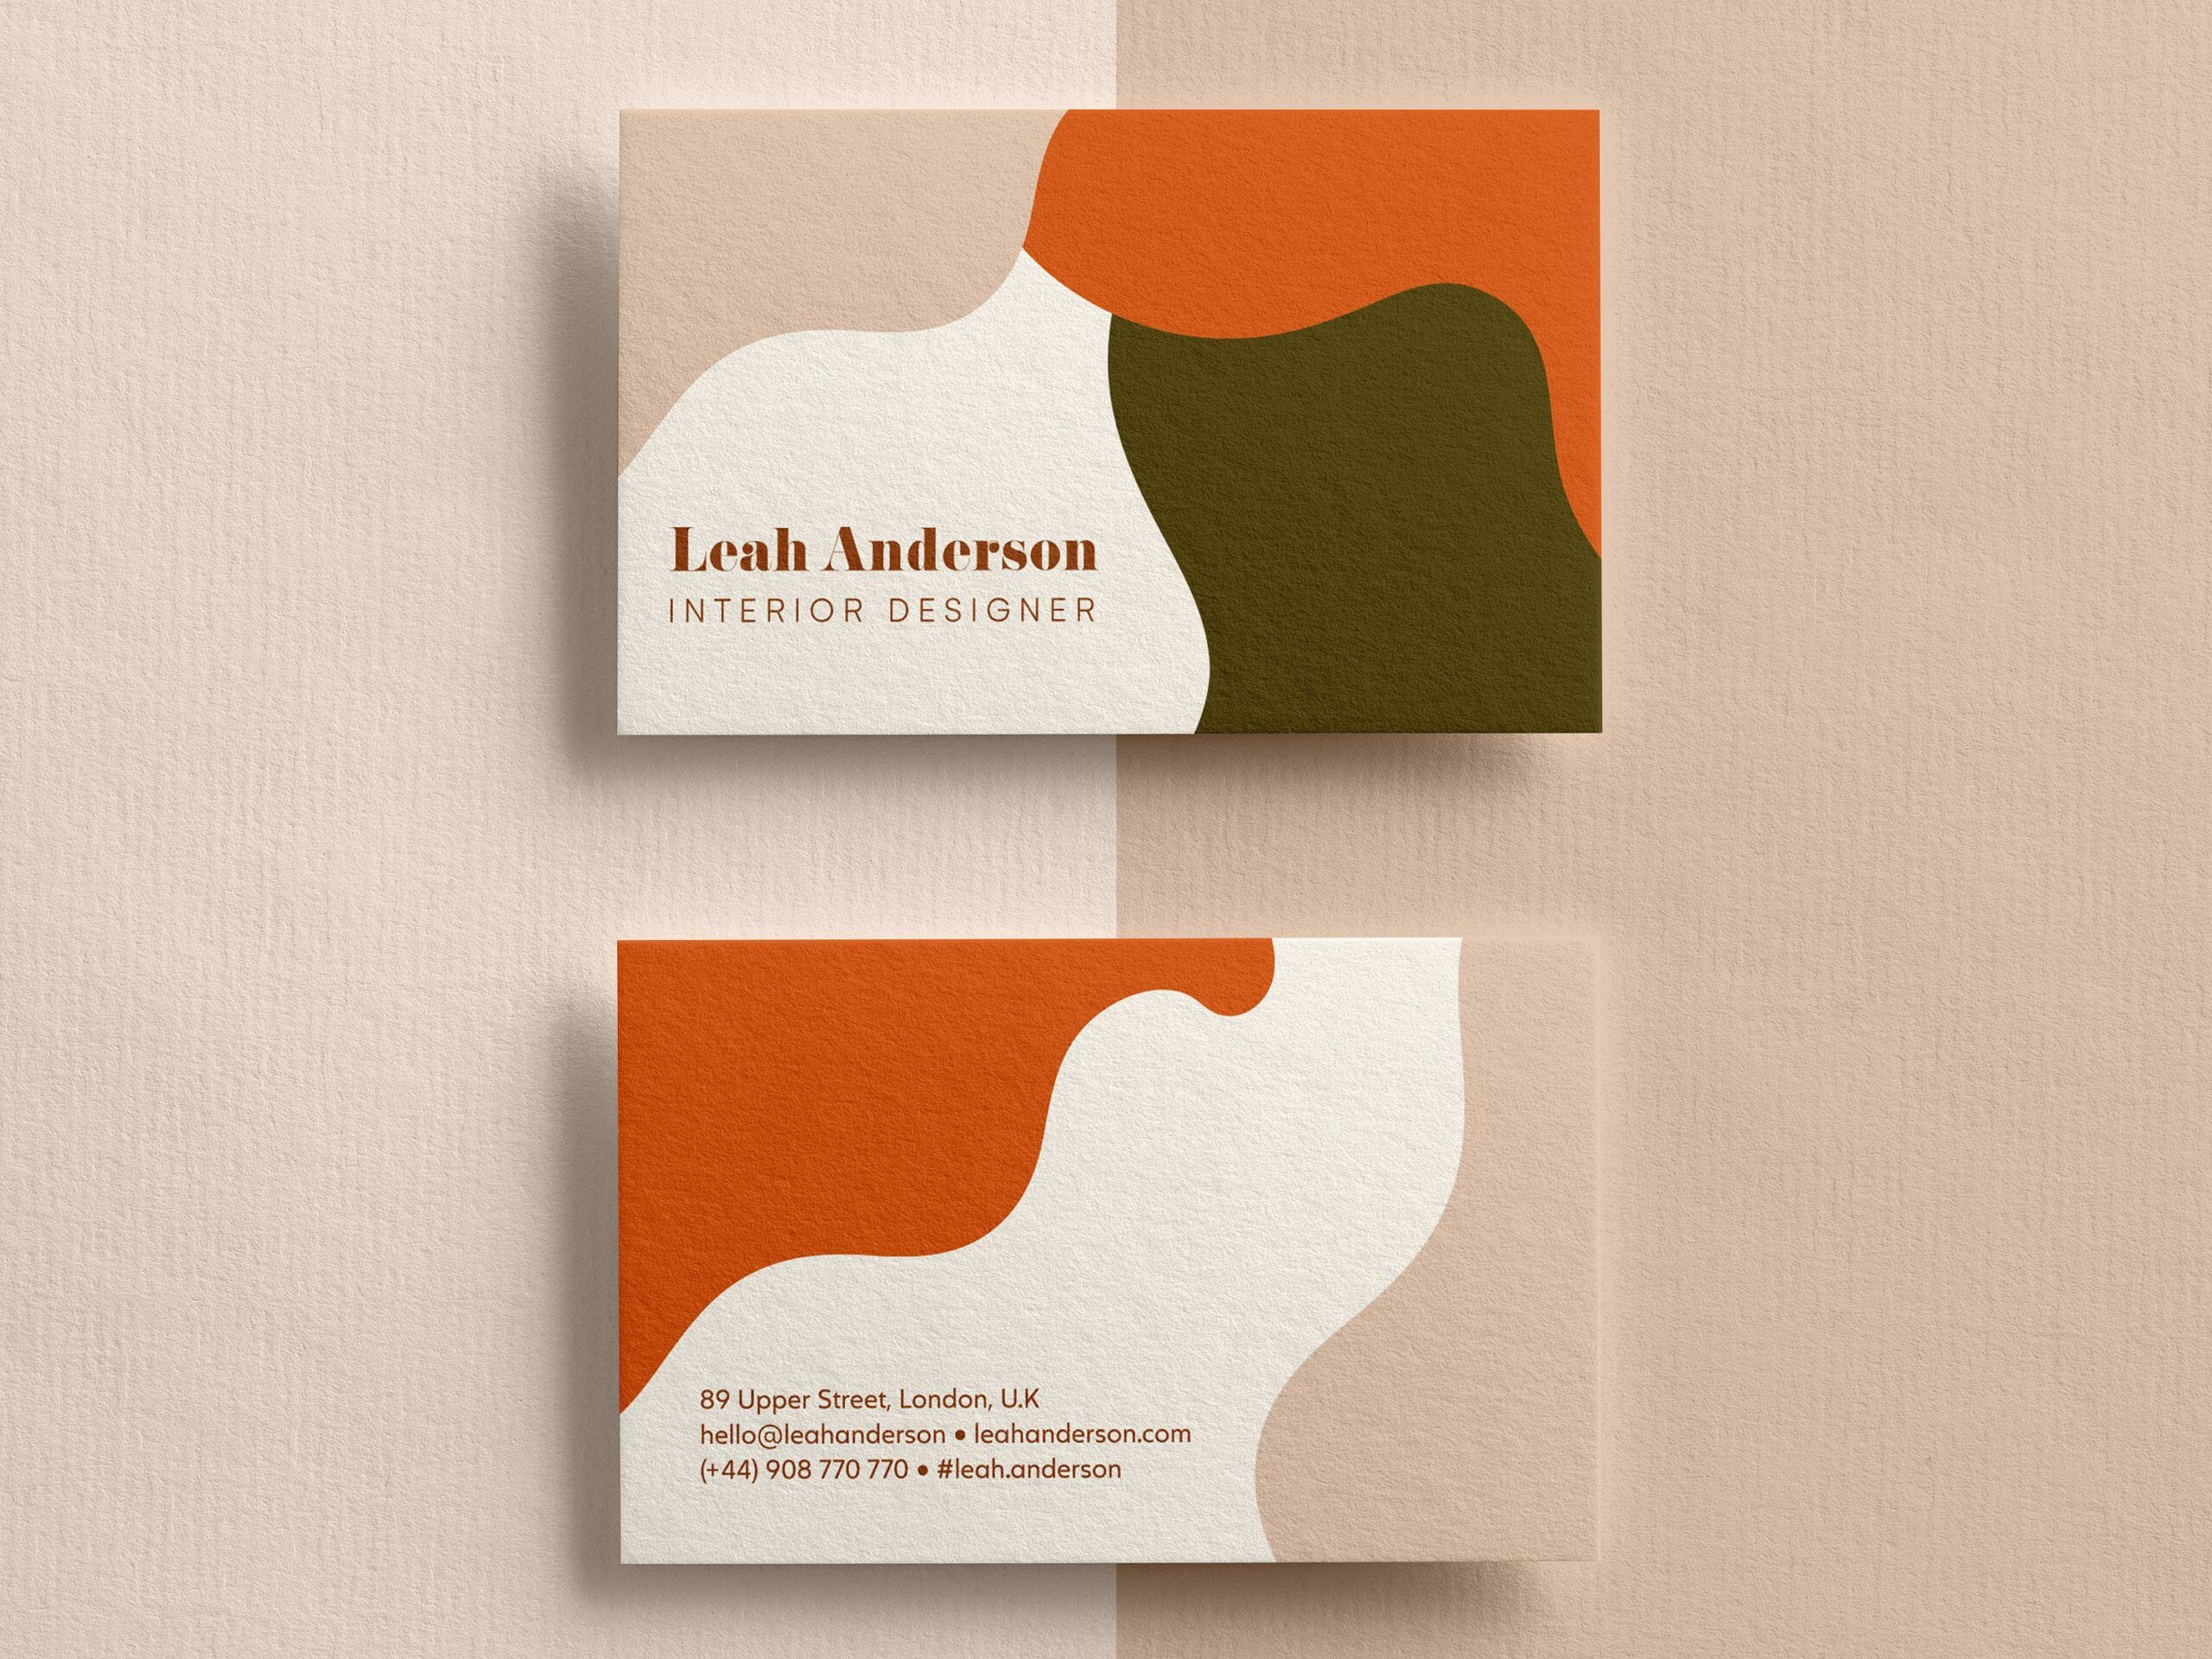 Standard Business Cards Templates Designs Page 2 Vistaprint Business Card Template Design Visiting Card Templates Visiting Card Maker